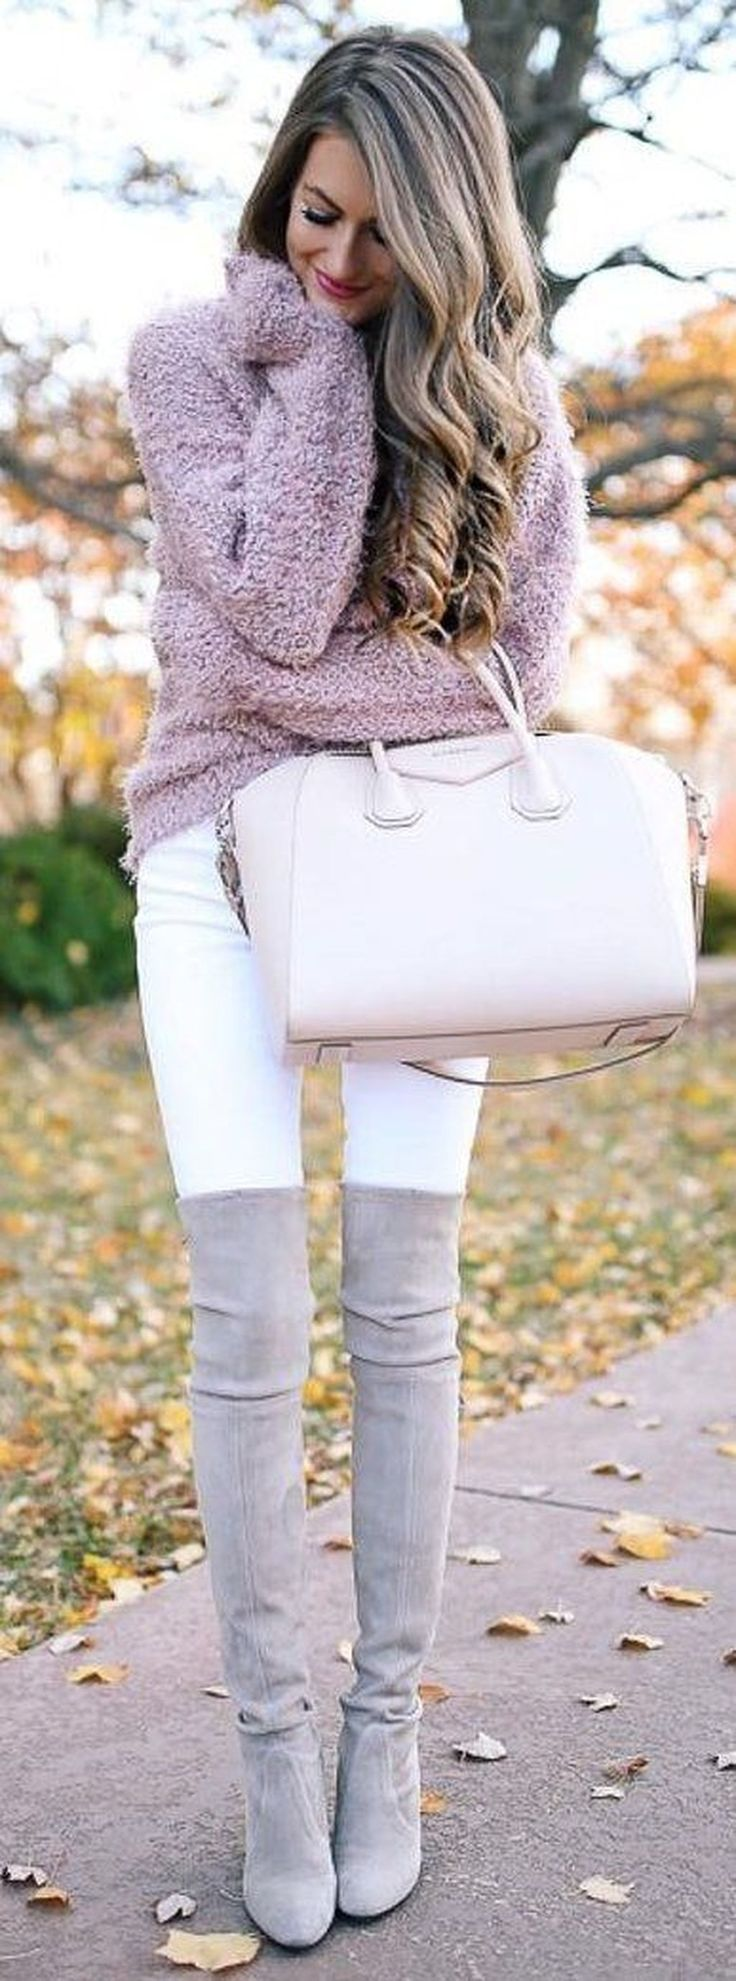 best autumnwinter fashion images on pinterest casual wear